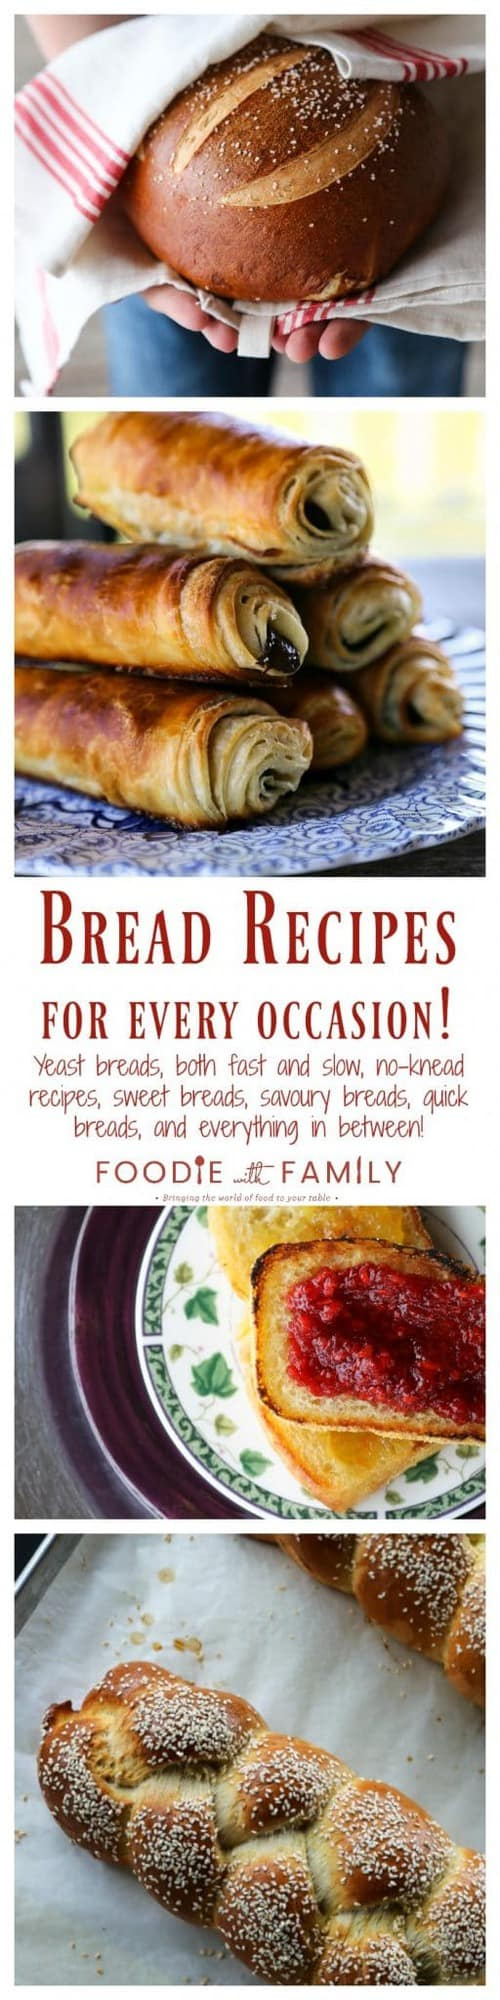 Bread Recipes for every occasion; fast yeast breads, traditional yeast breads, quick breads, sweet breads, savoury breads, and everything in between!